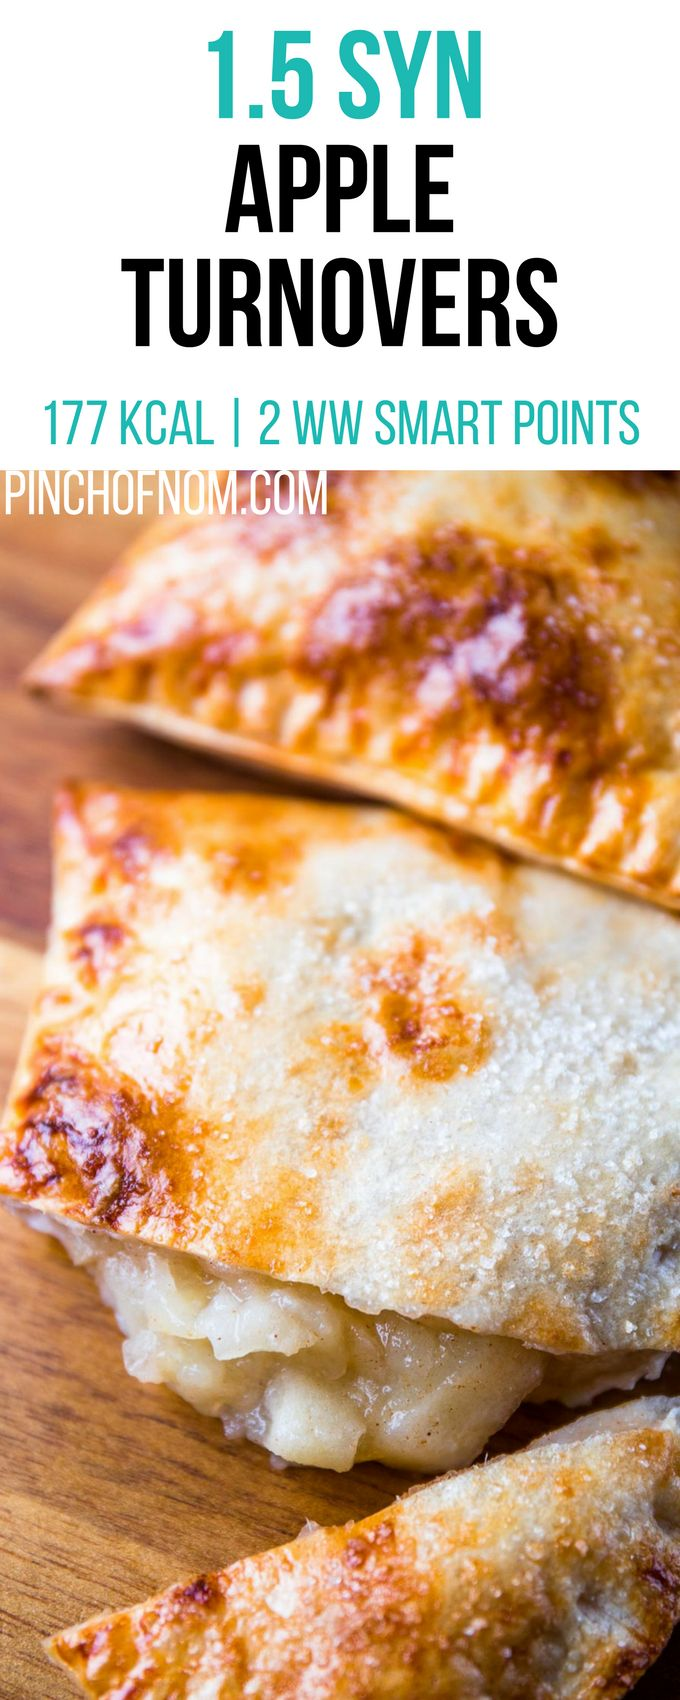 1.5 Syn Apple Turnovers | Pinch Of Nom Slimming World Recipes    177 kcal | 1.5 Syns | 2 Weight Watchers Smart Points